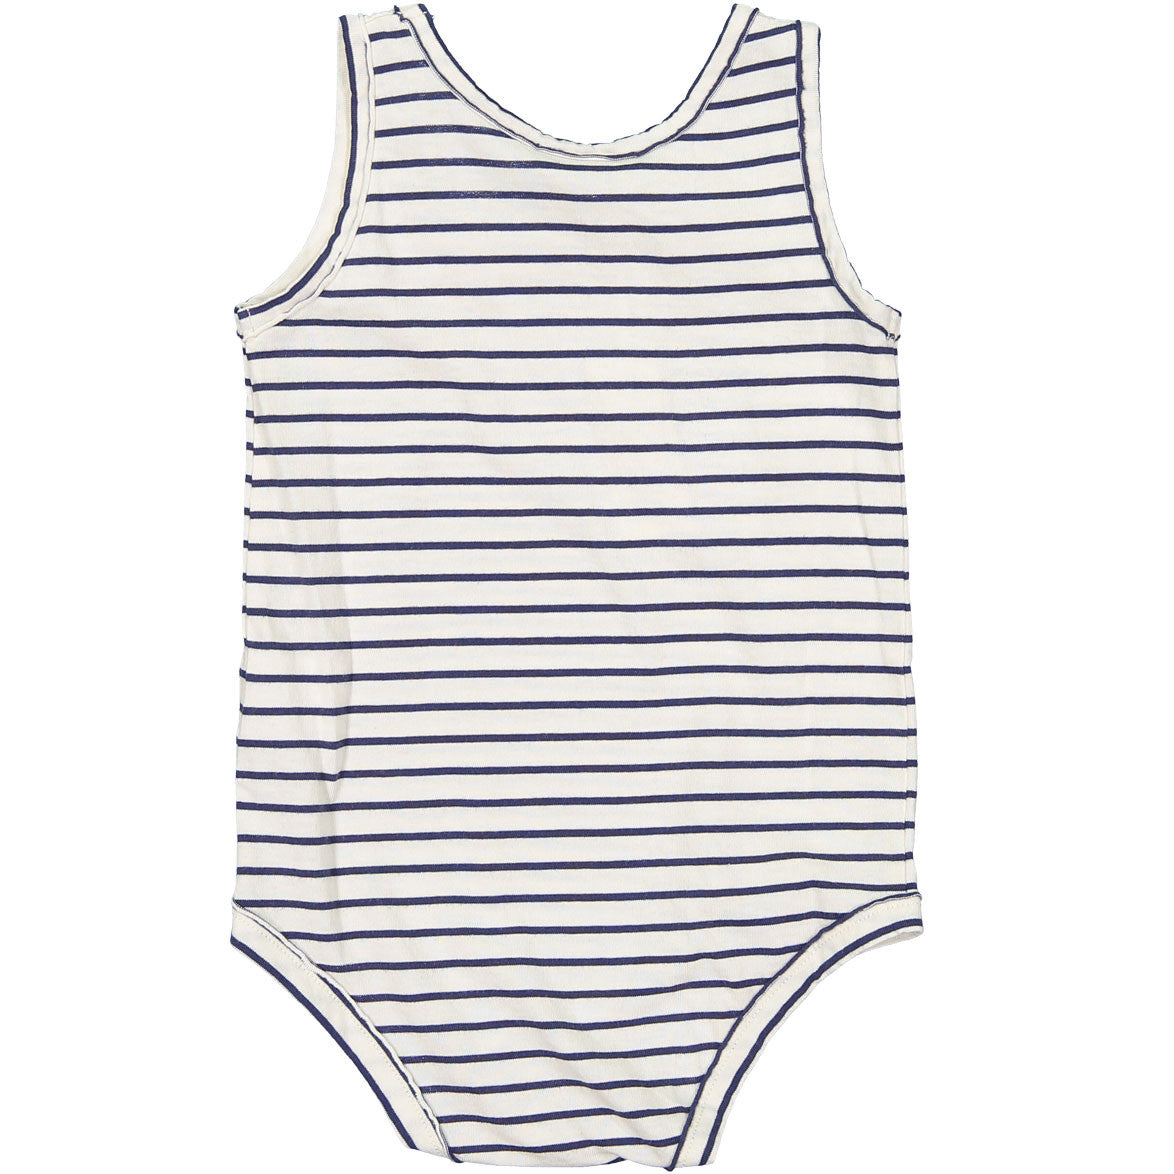 Babe and Tess Striped Bike Body - Ladida